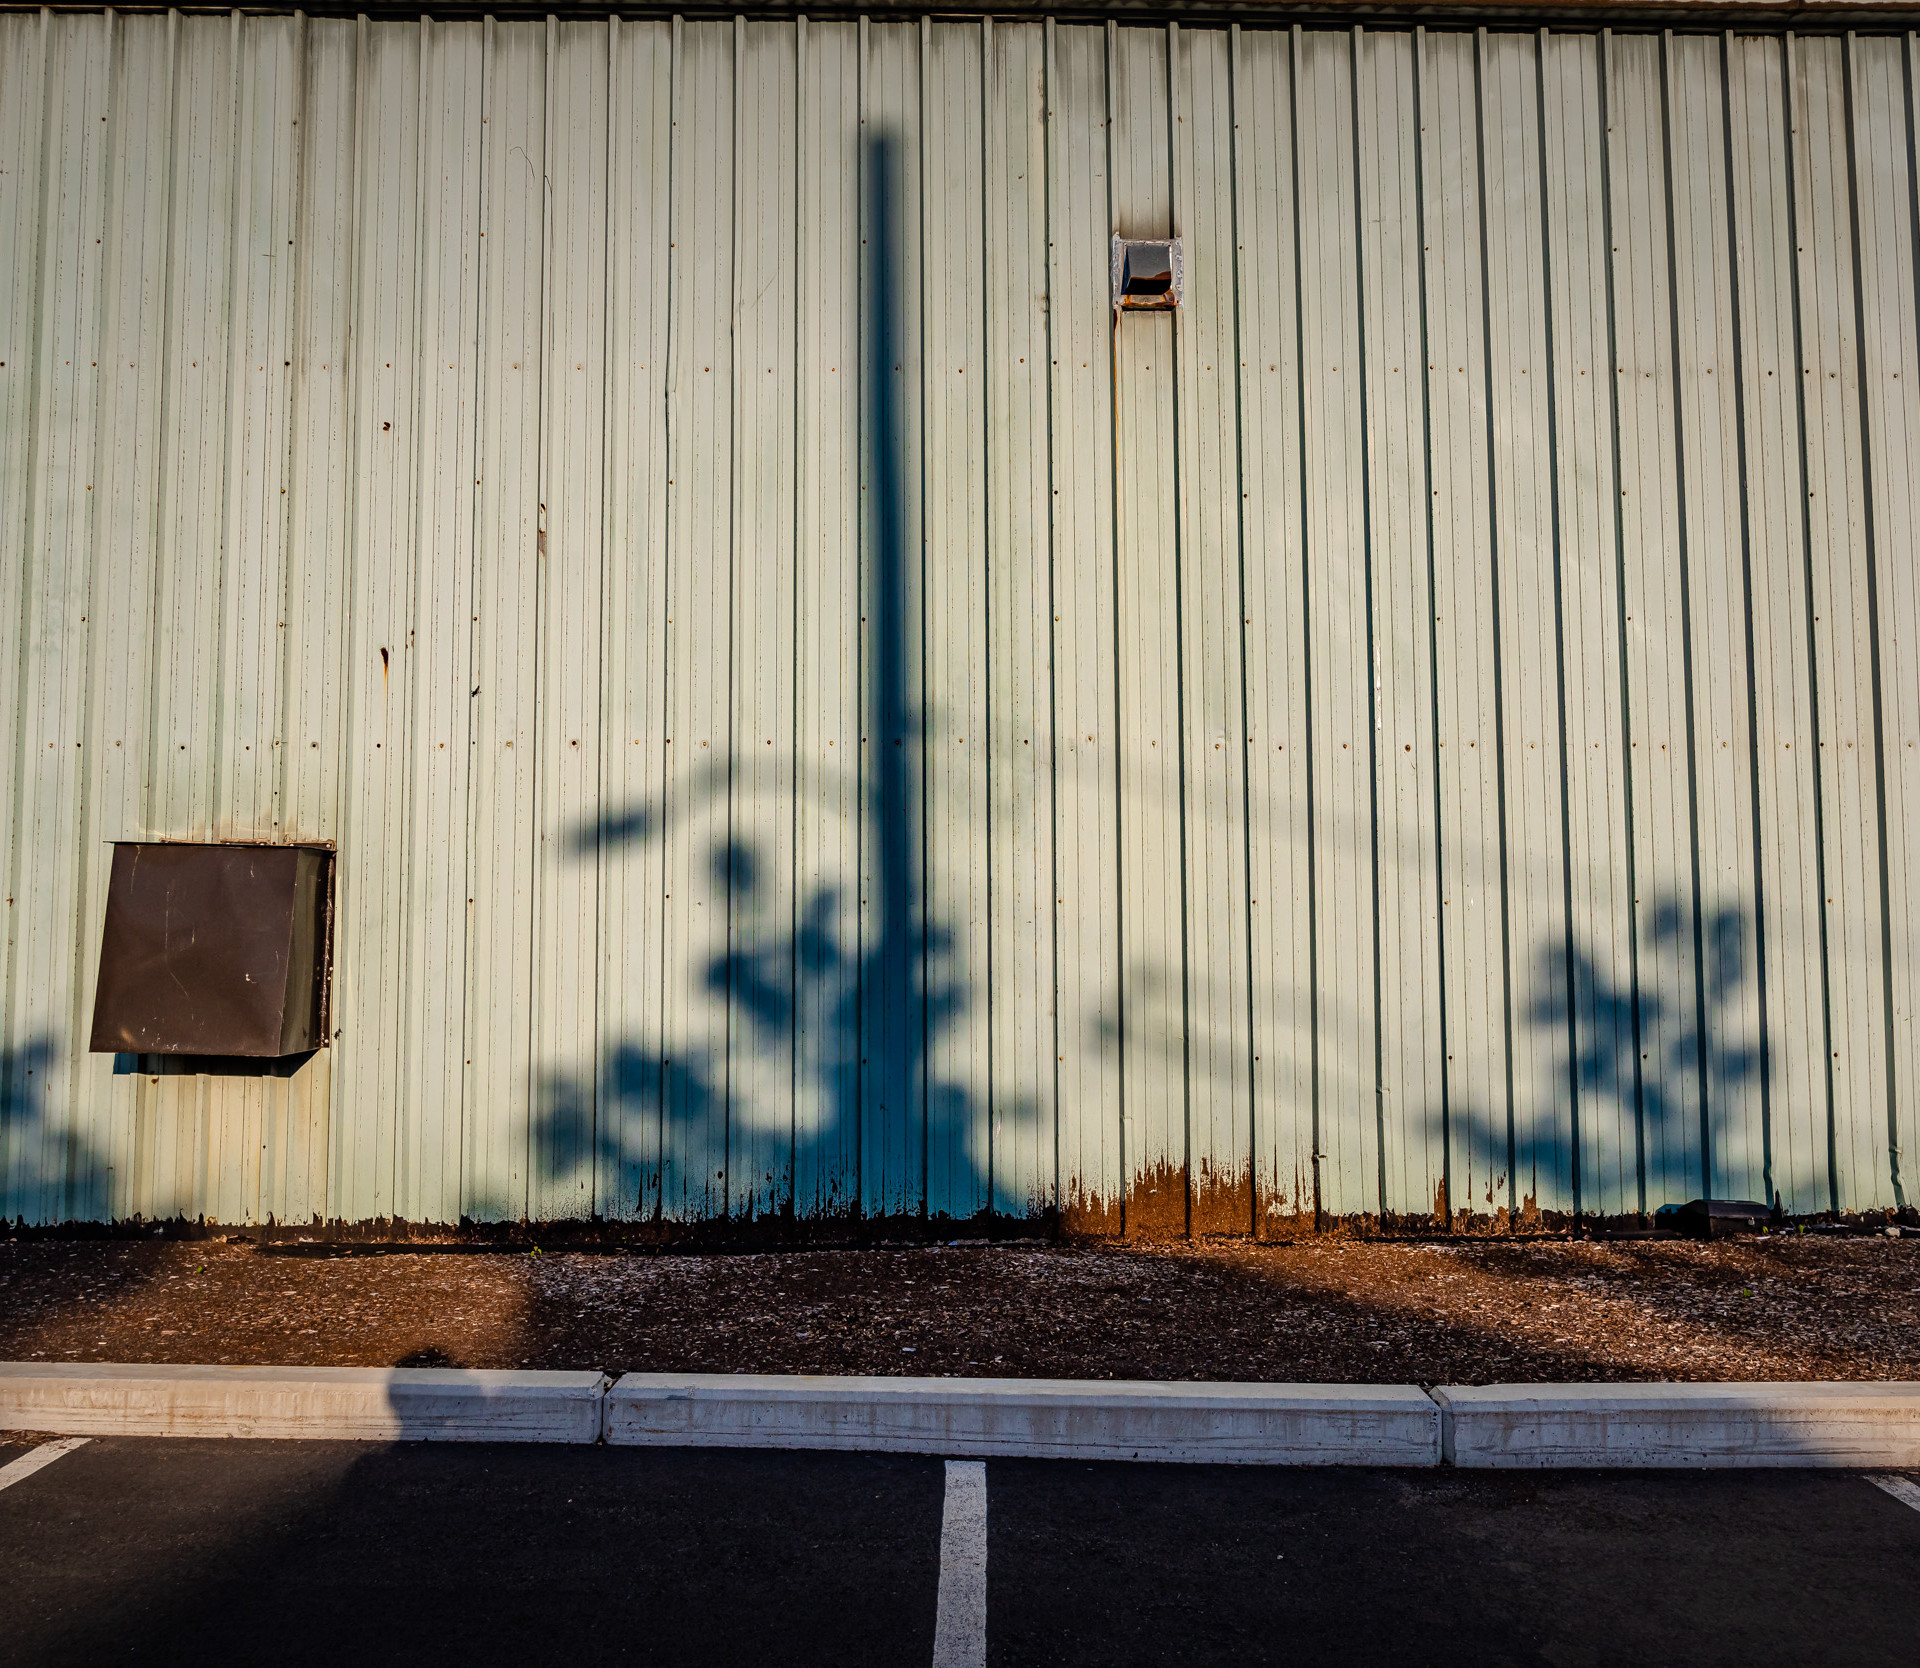 Late afternoon shadows.